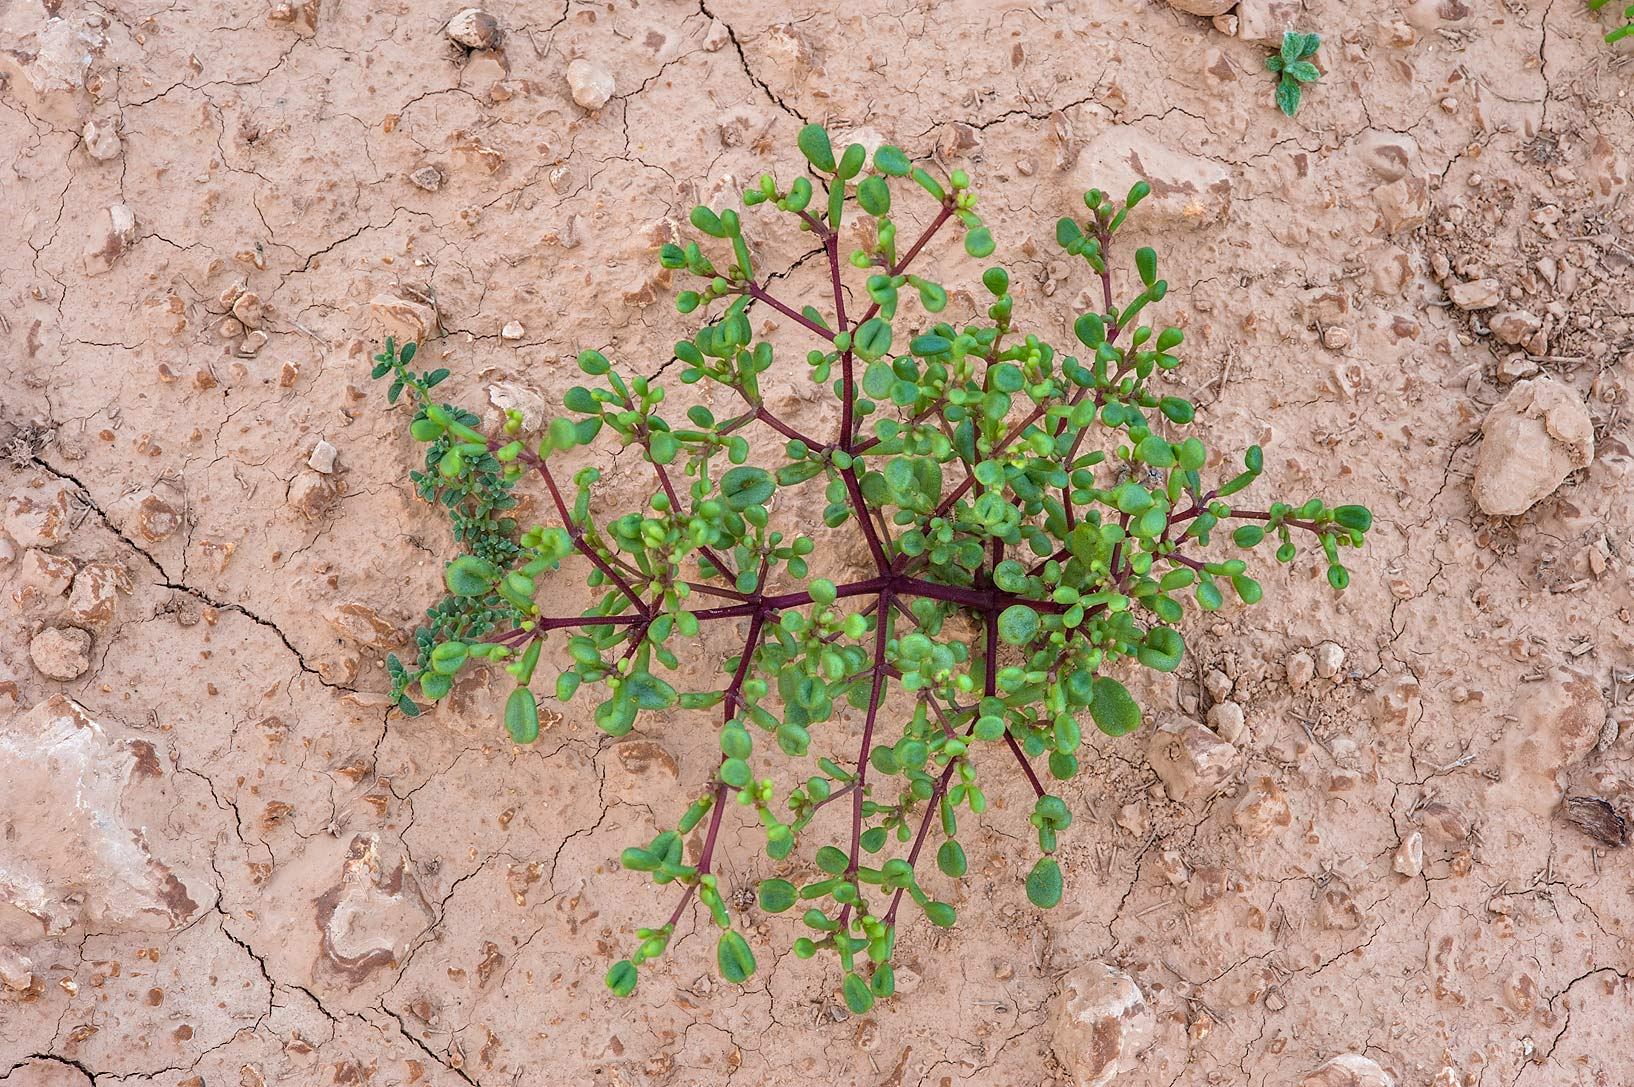 Seedling of Tetraena qatarense (Zygophyllum...of Al Magdah farms. Northern Qatar